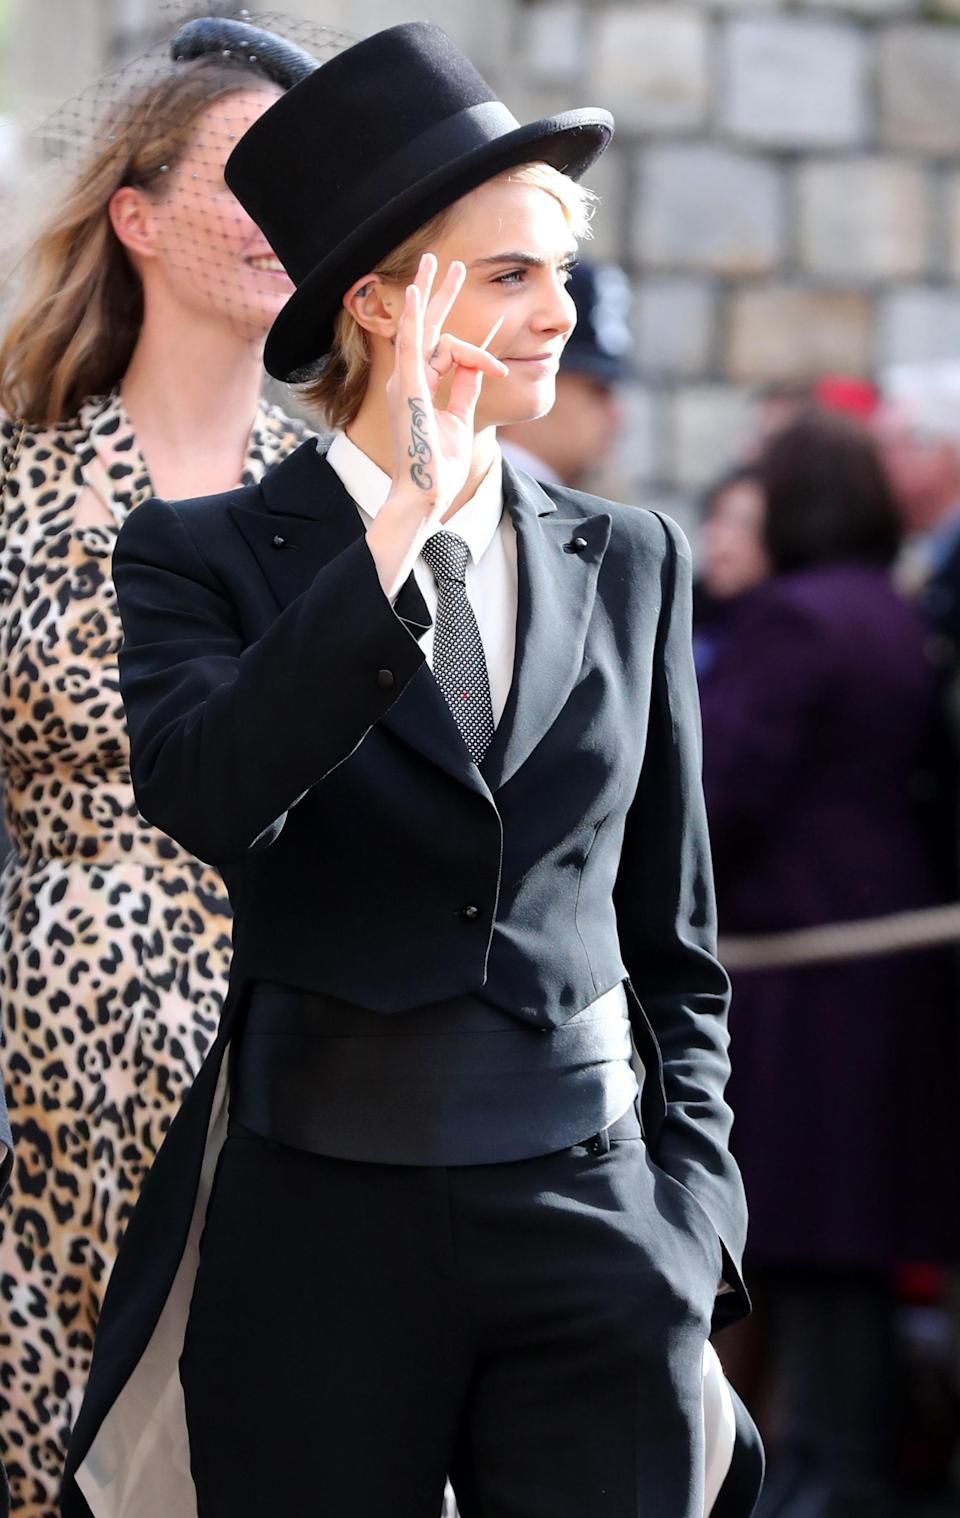 Cara Delevingne turned heads in a top hat and suit. (Photo: Getty Images)